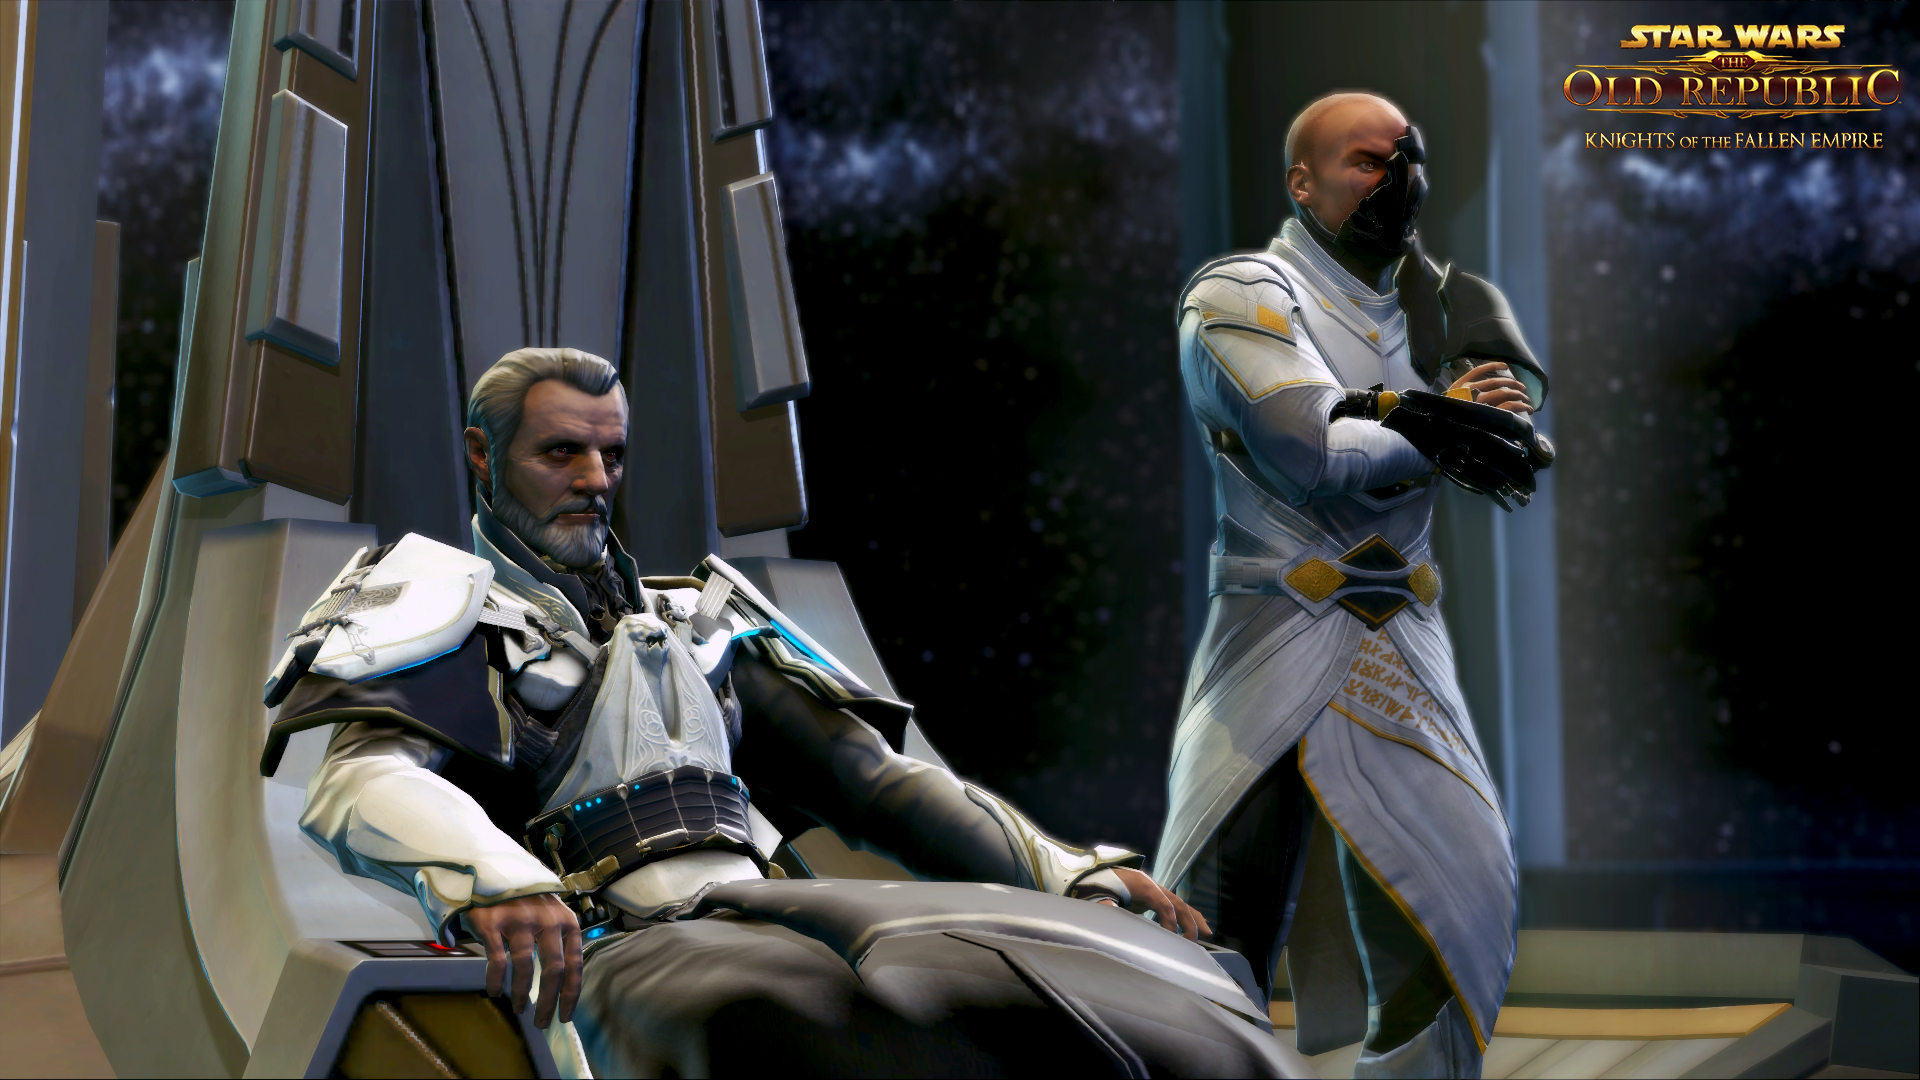 community blog by james internet ego swtor knights of the fallen